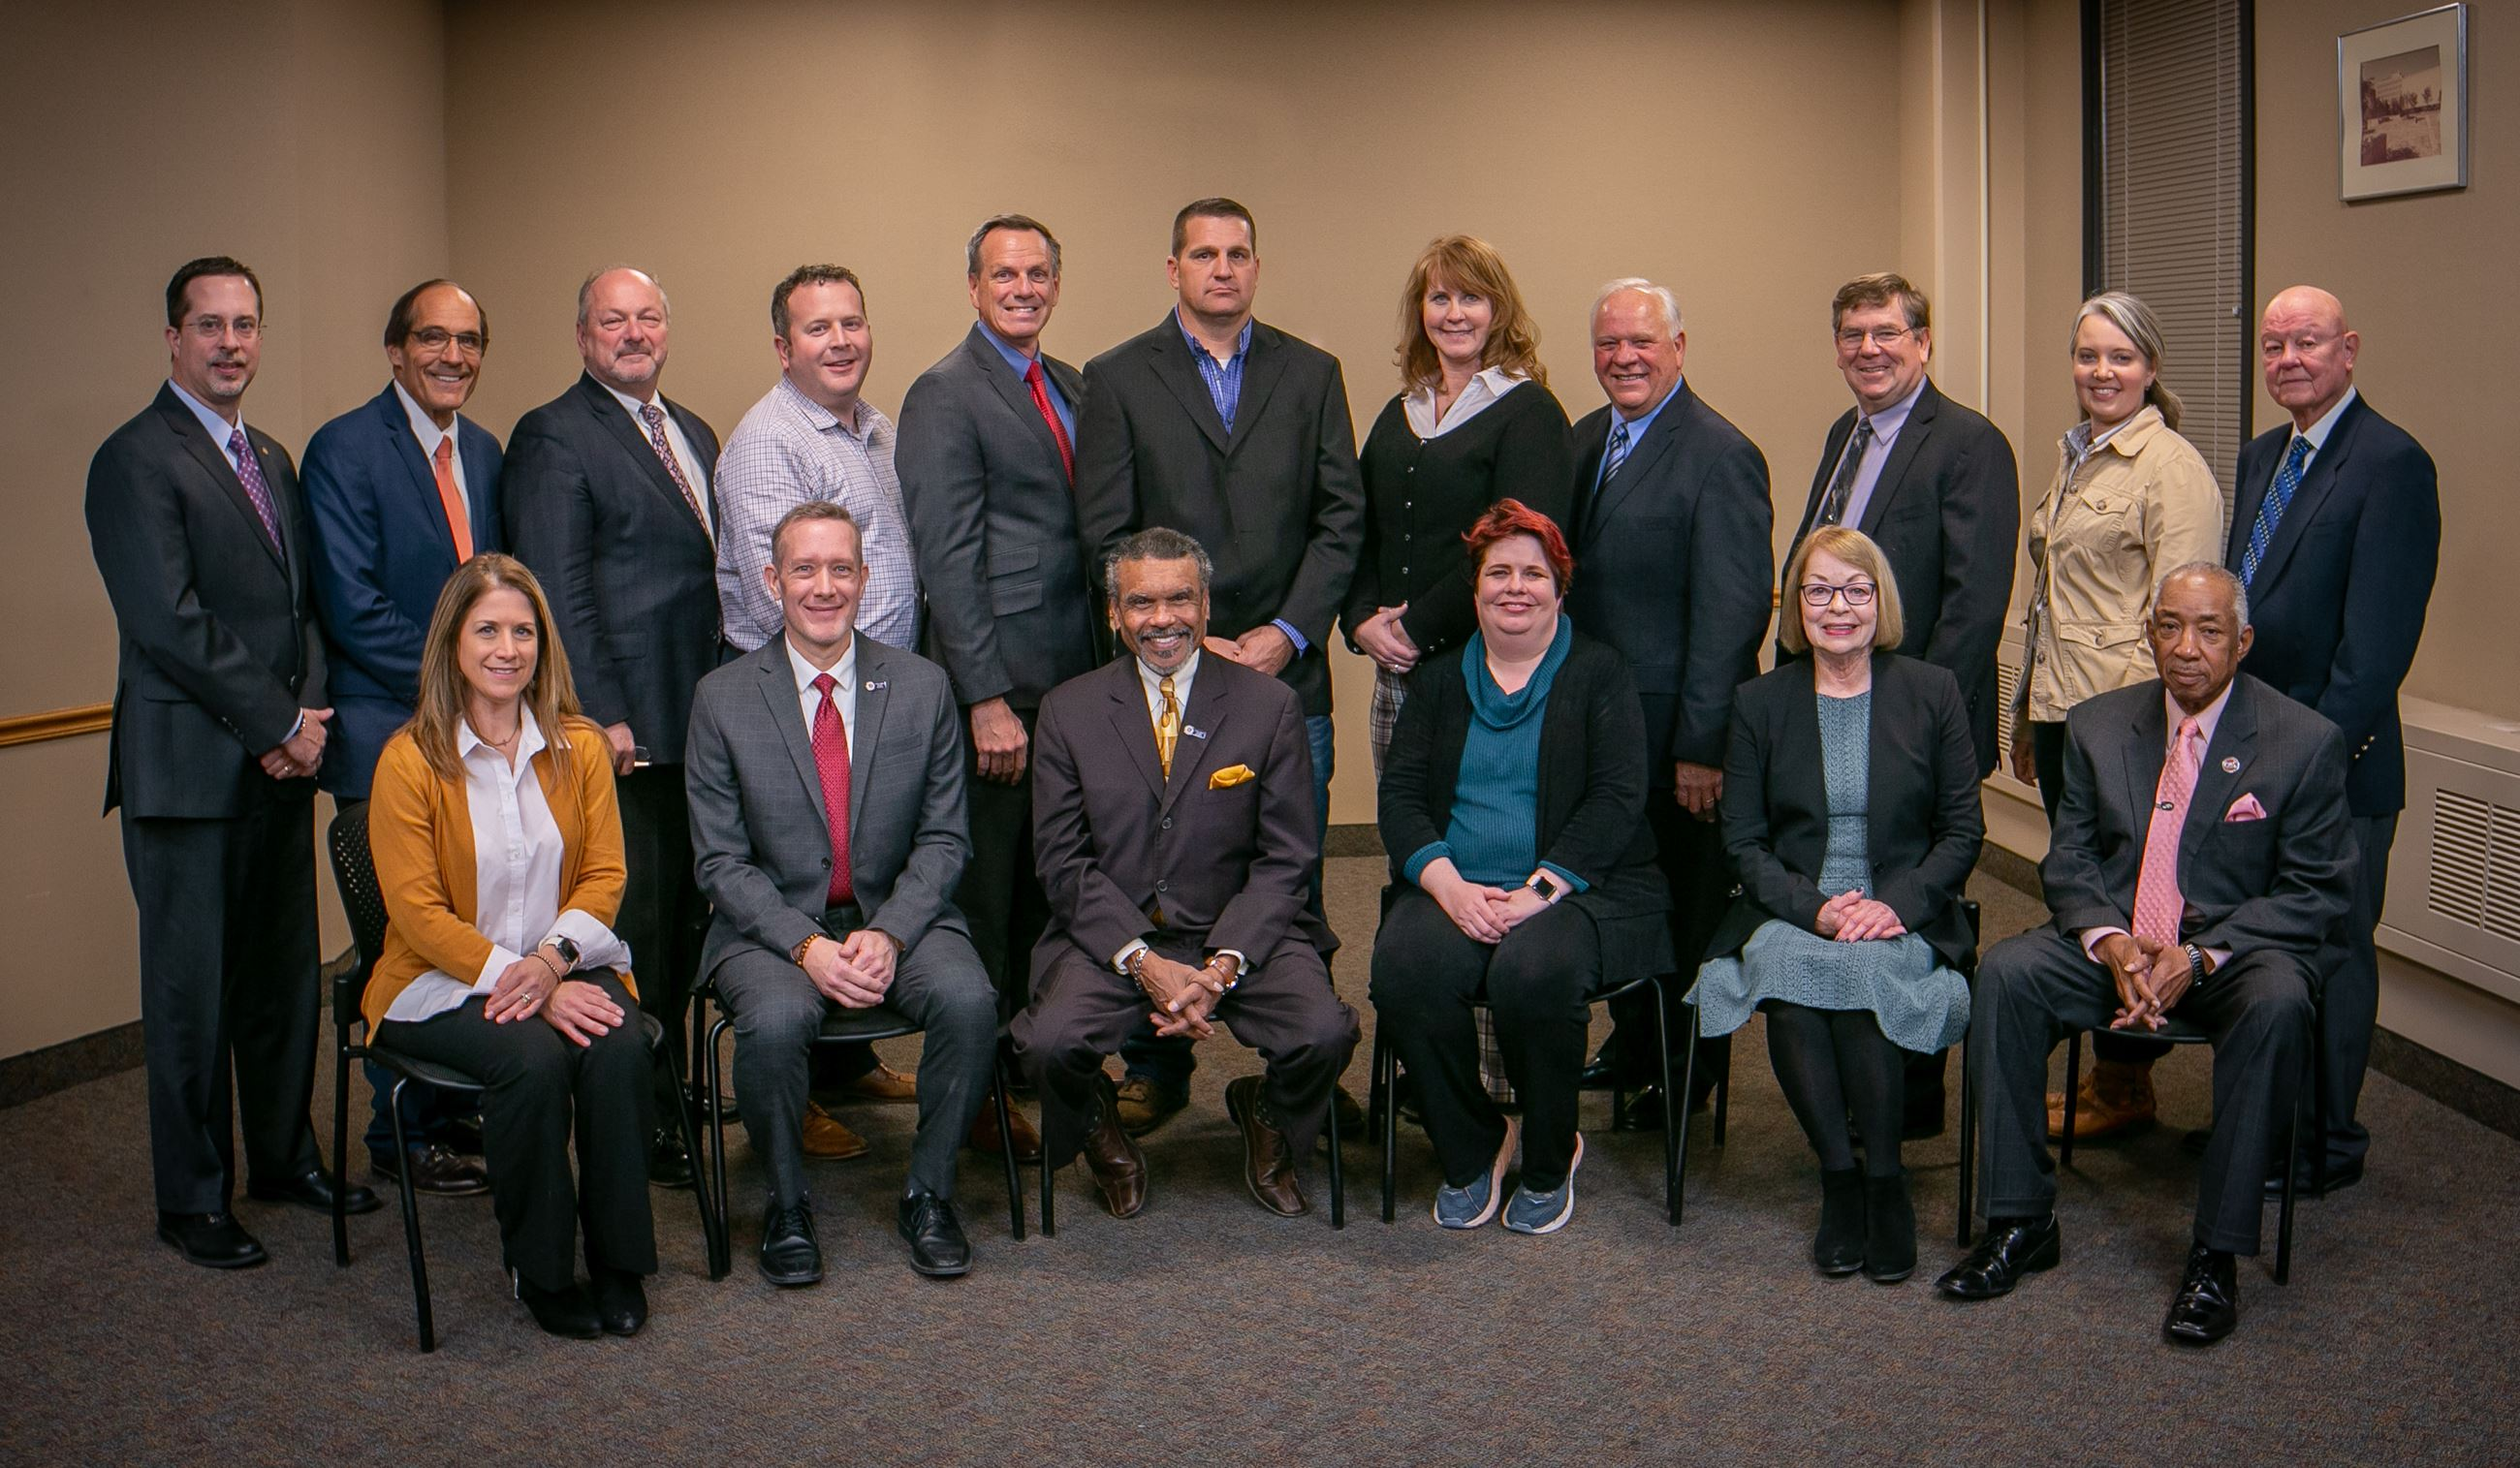 2019 Board Group Photo